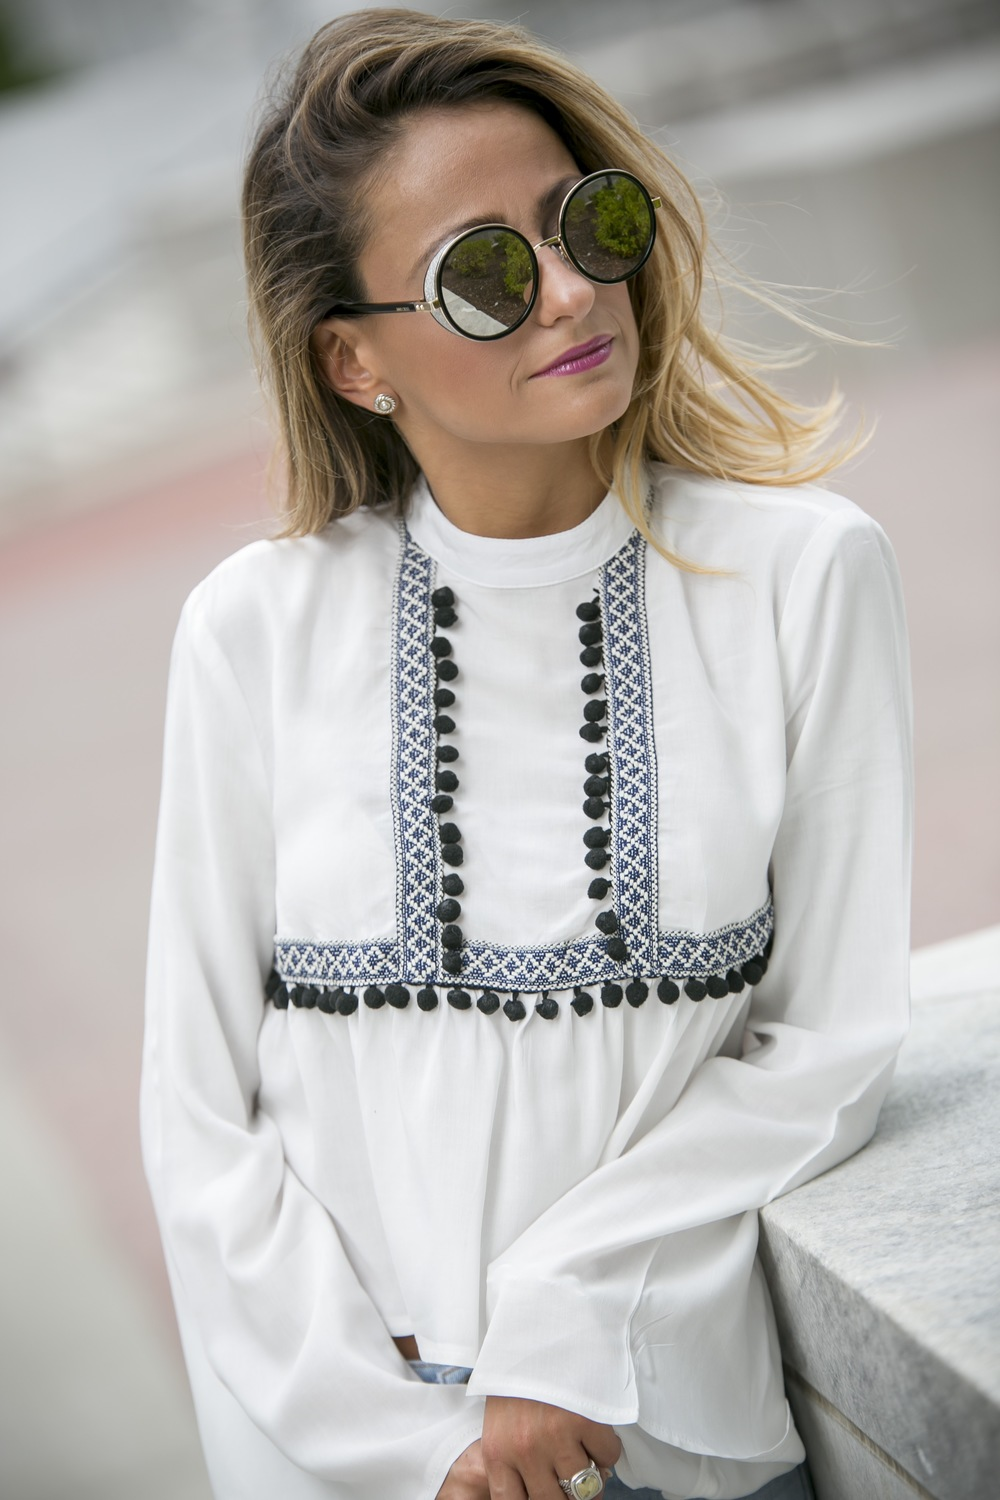 Jimmy Choo sunnies and Asos top